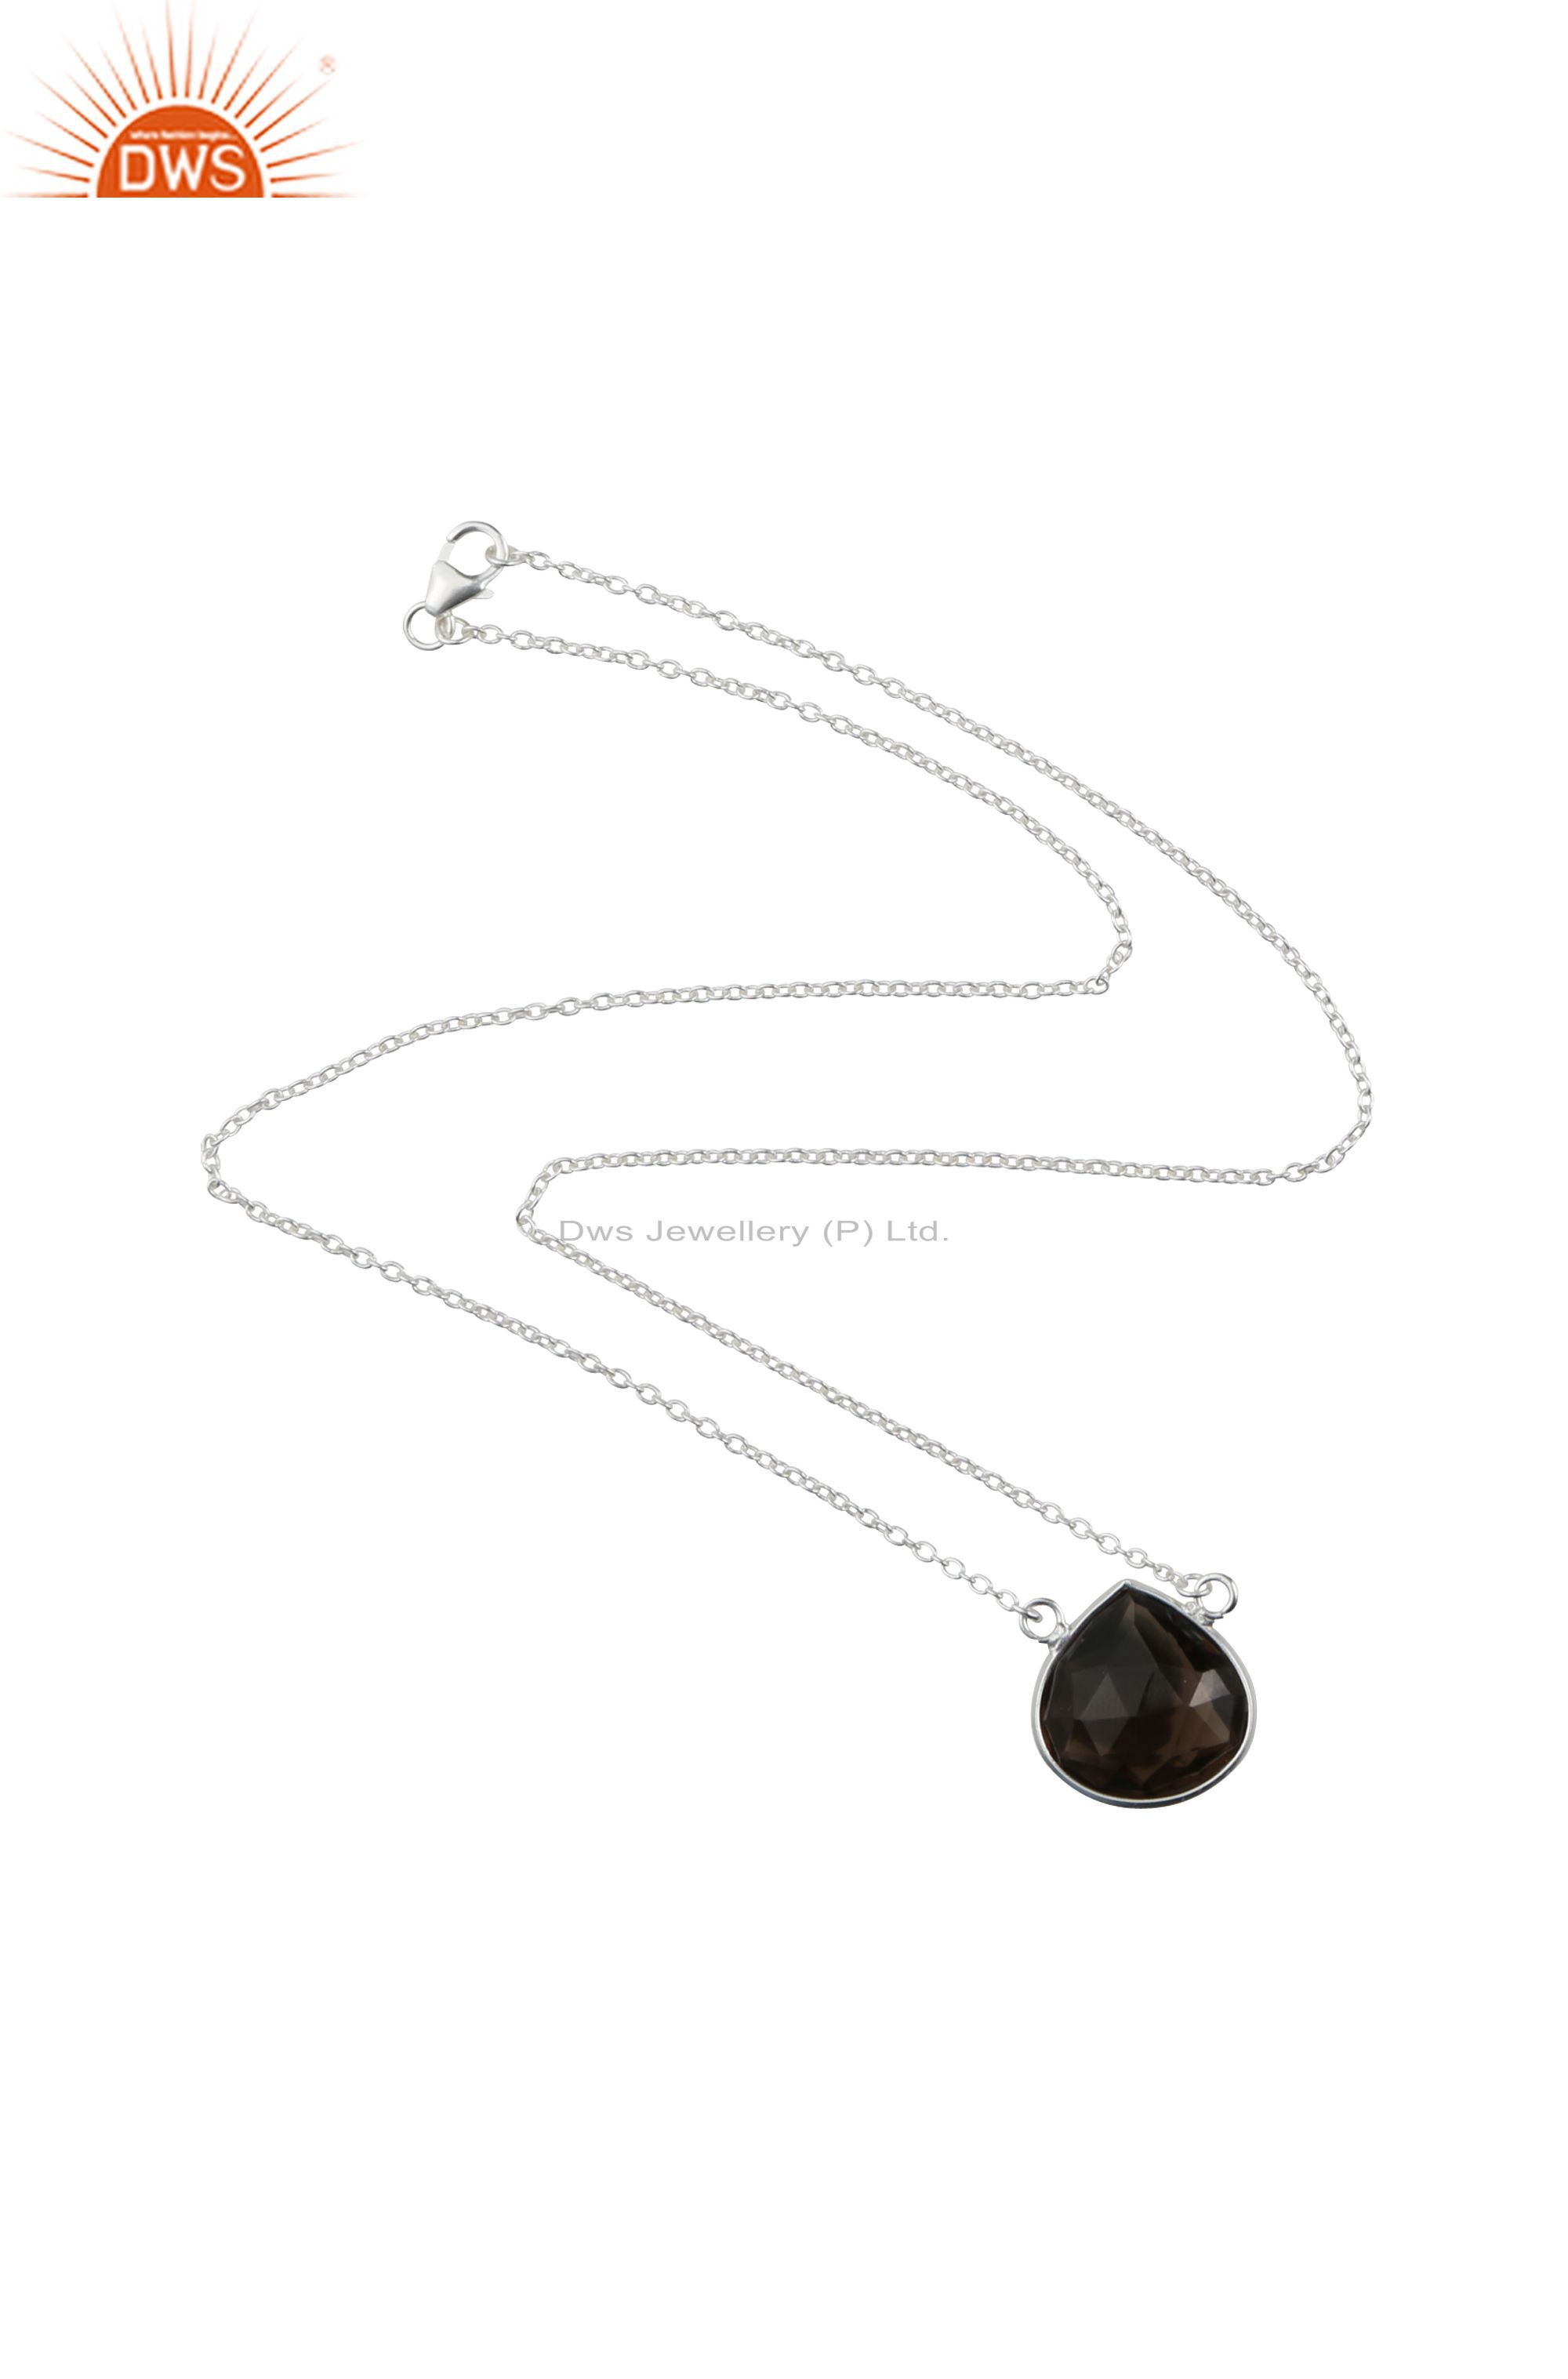 Handmade sterling silver faceted smoky quartz gemstone chain necklace